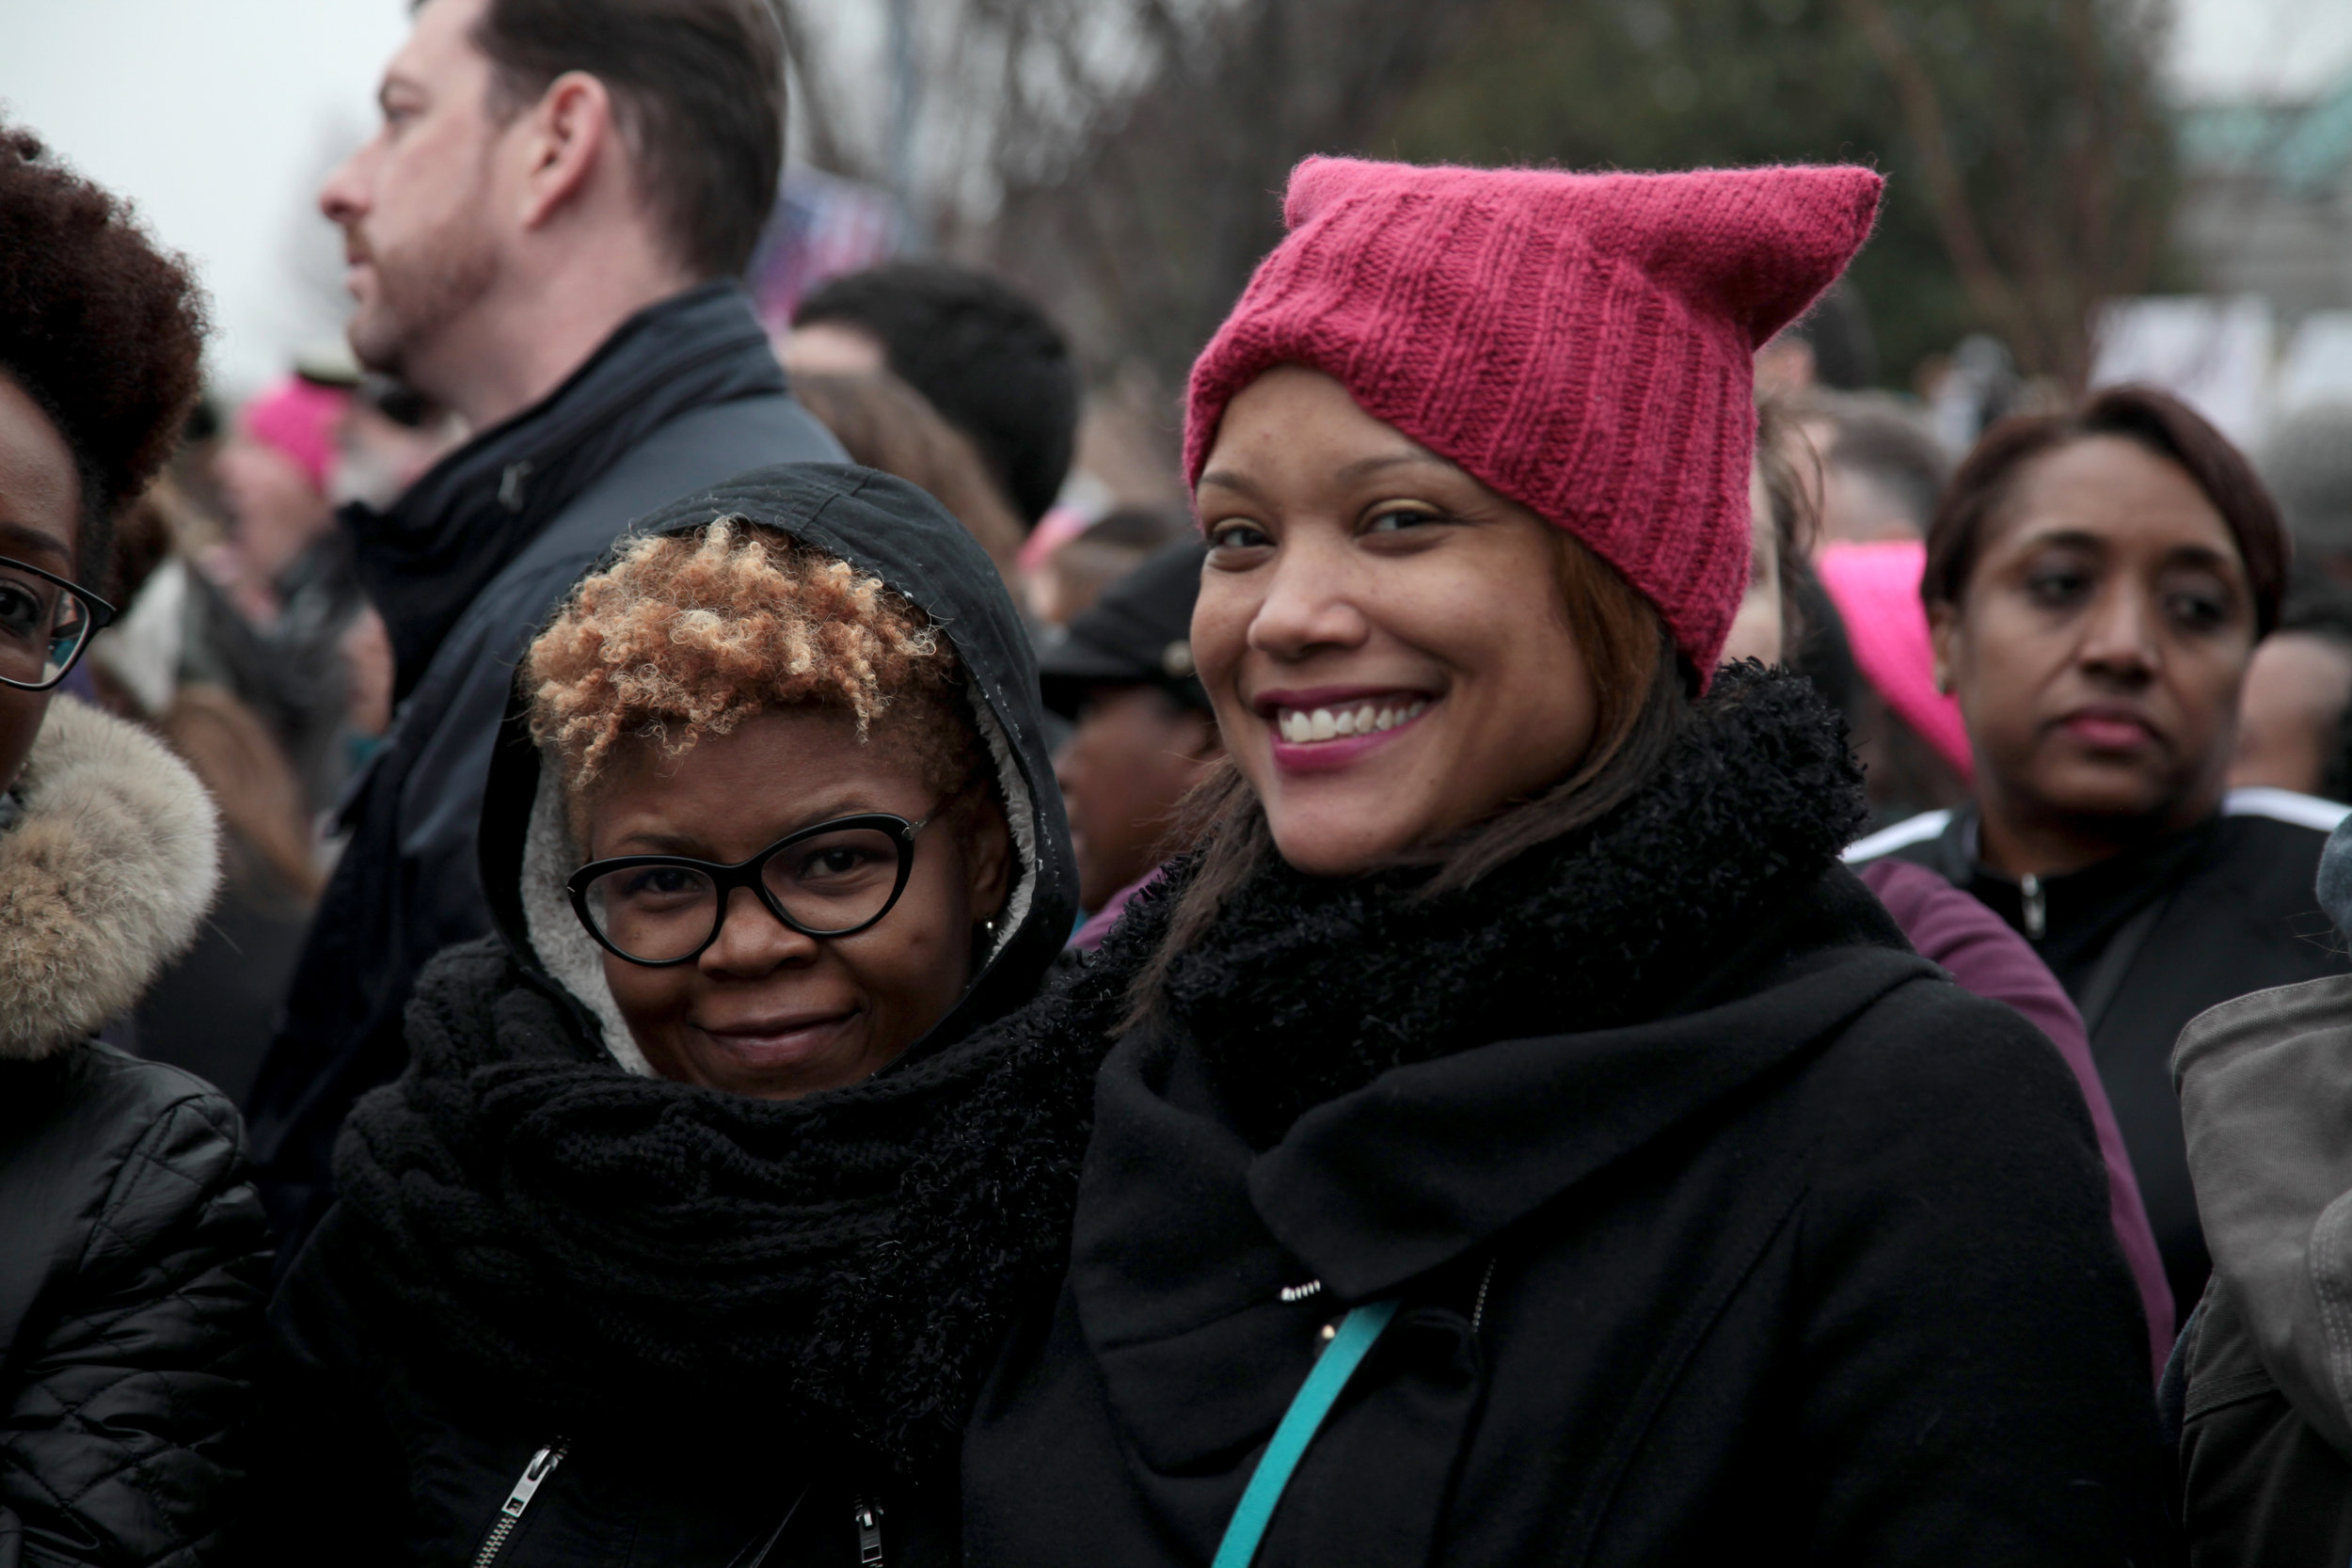 Copy of The Women's March 2017, Washington DC